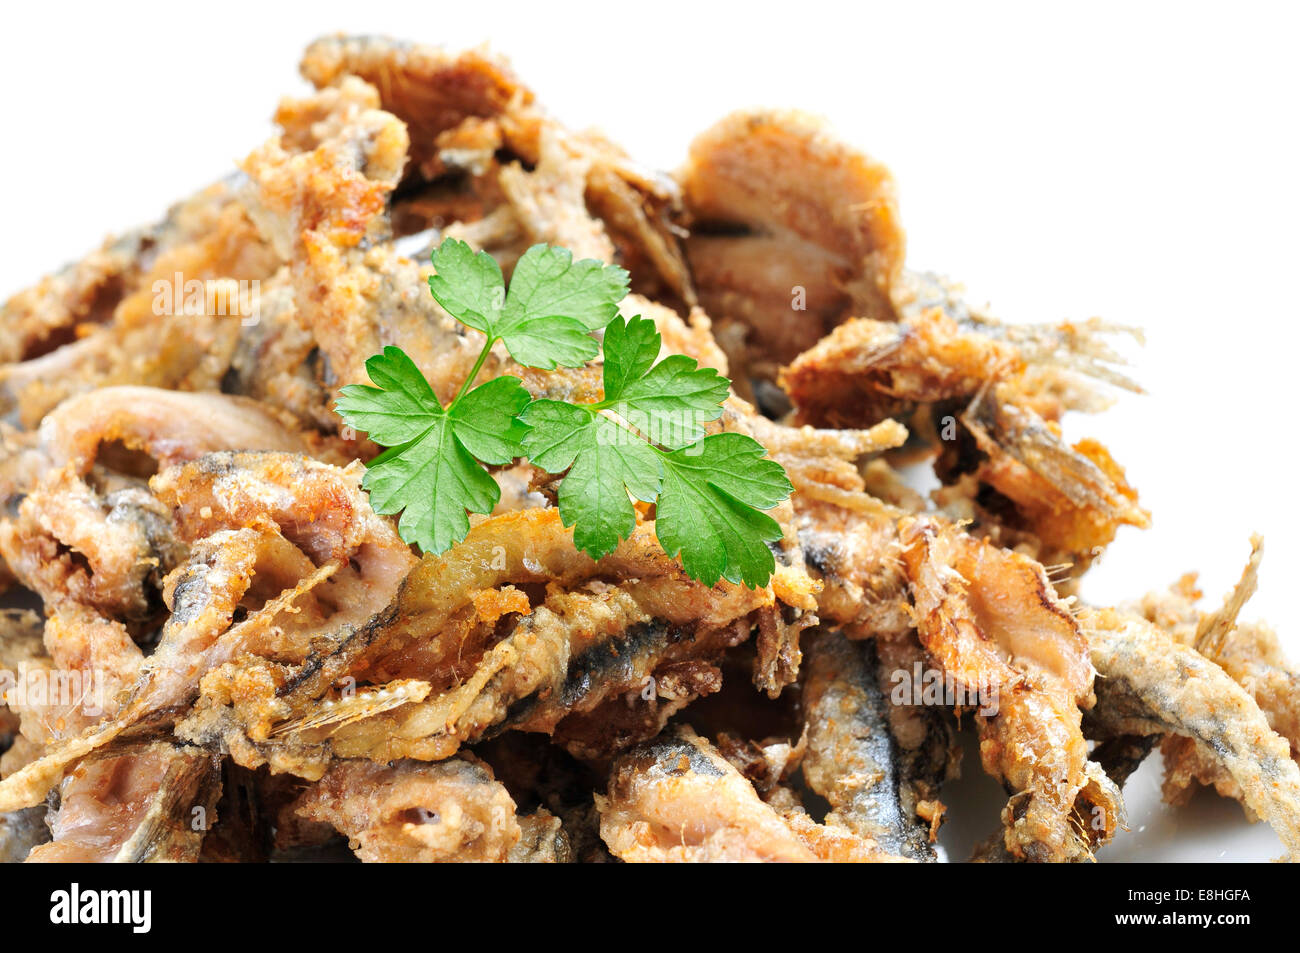 closeup of some spanish boquerones fritos, fried anchovies typical in Spain, served as tapas - Stock Image